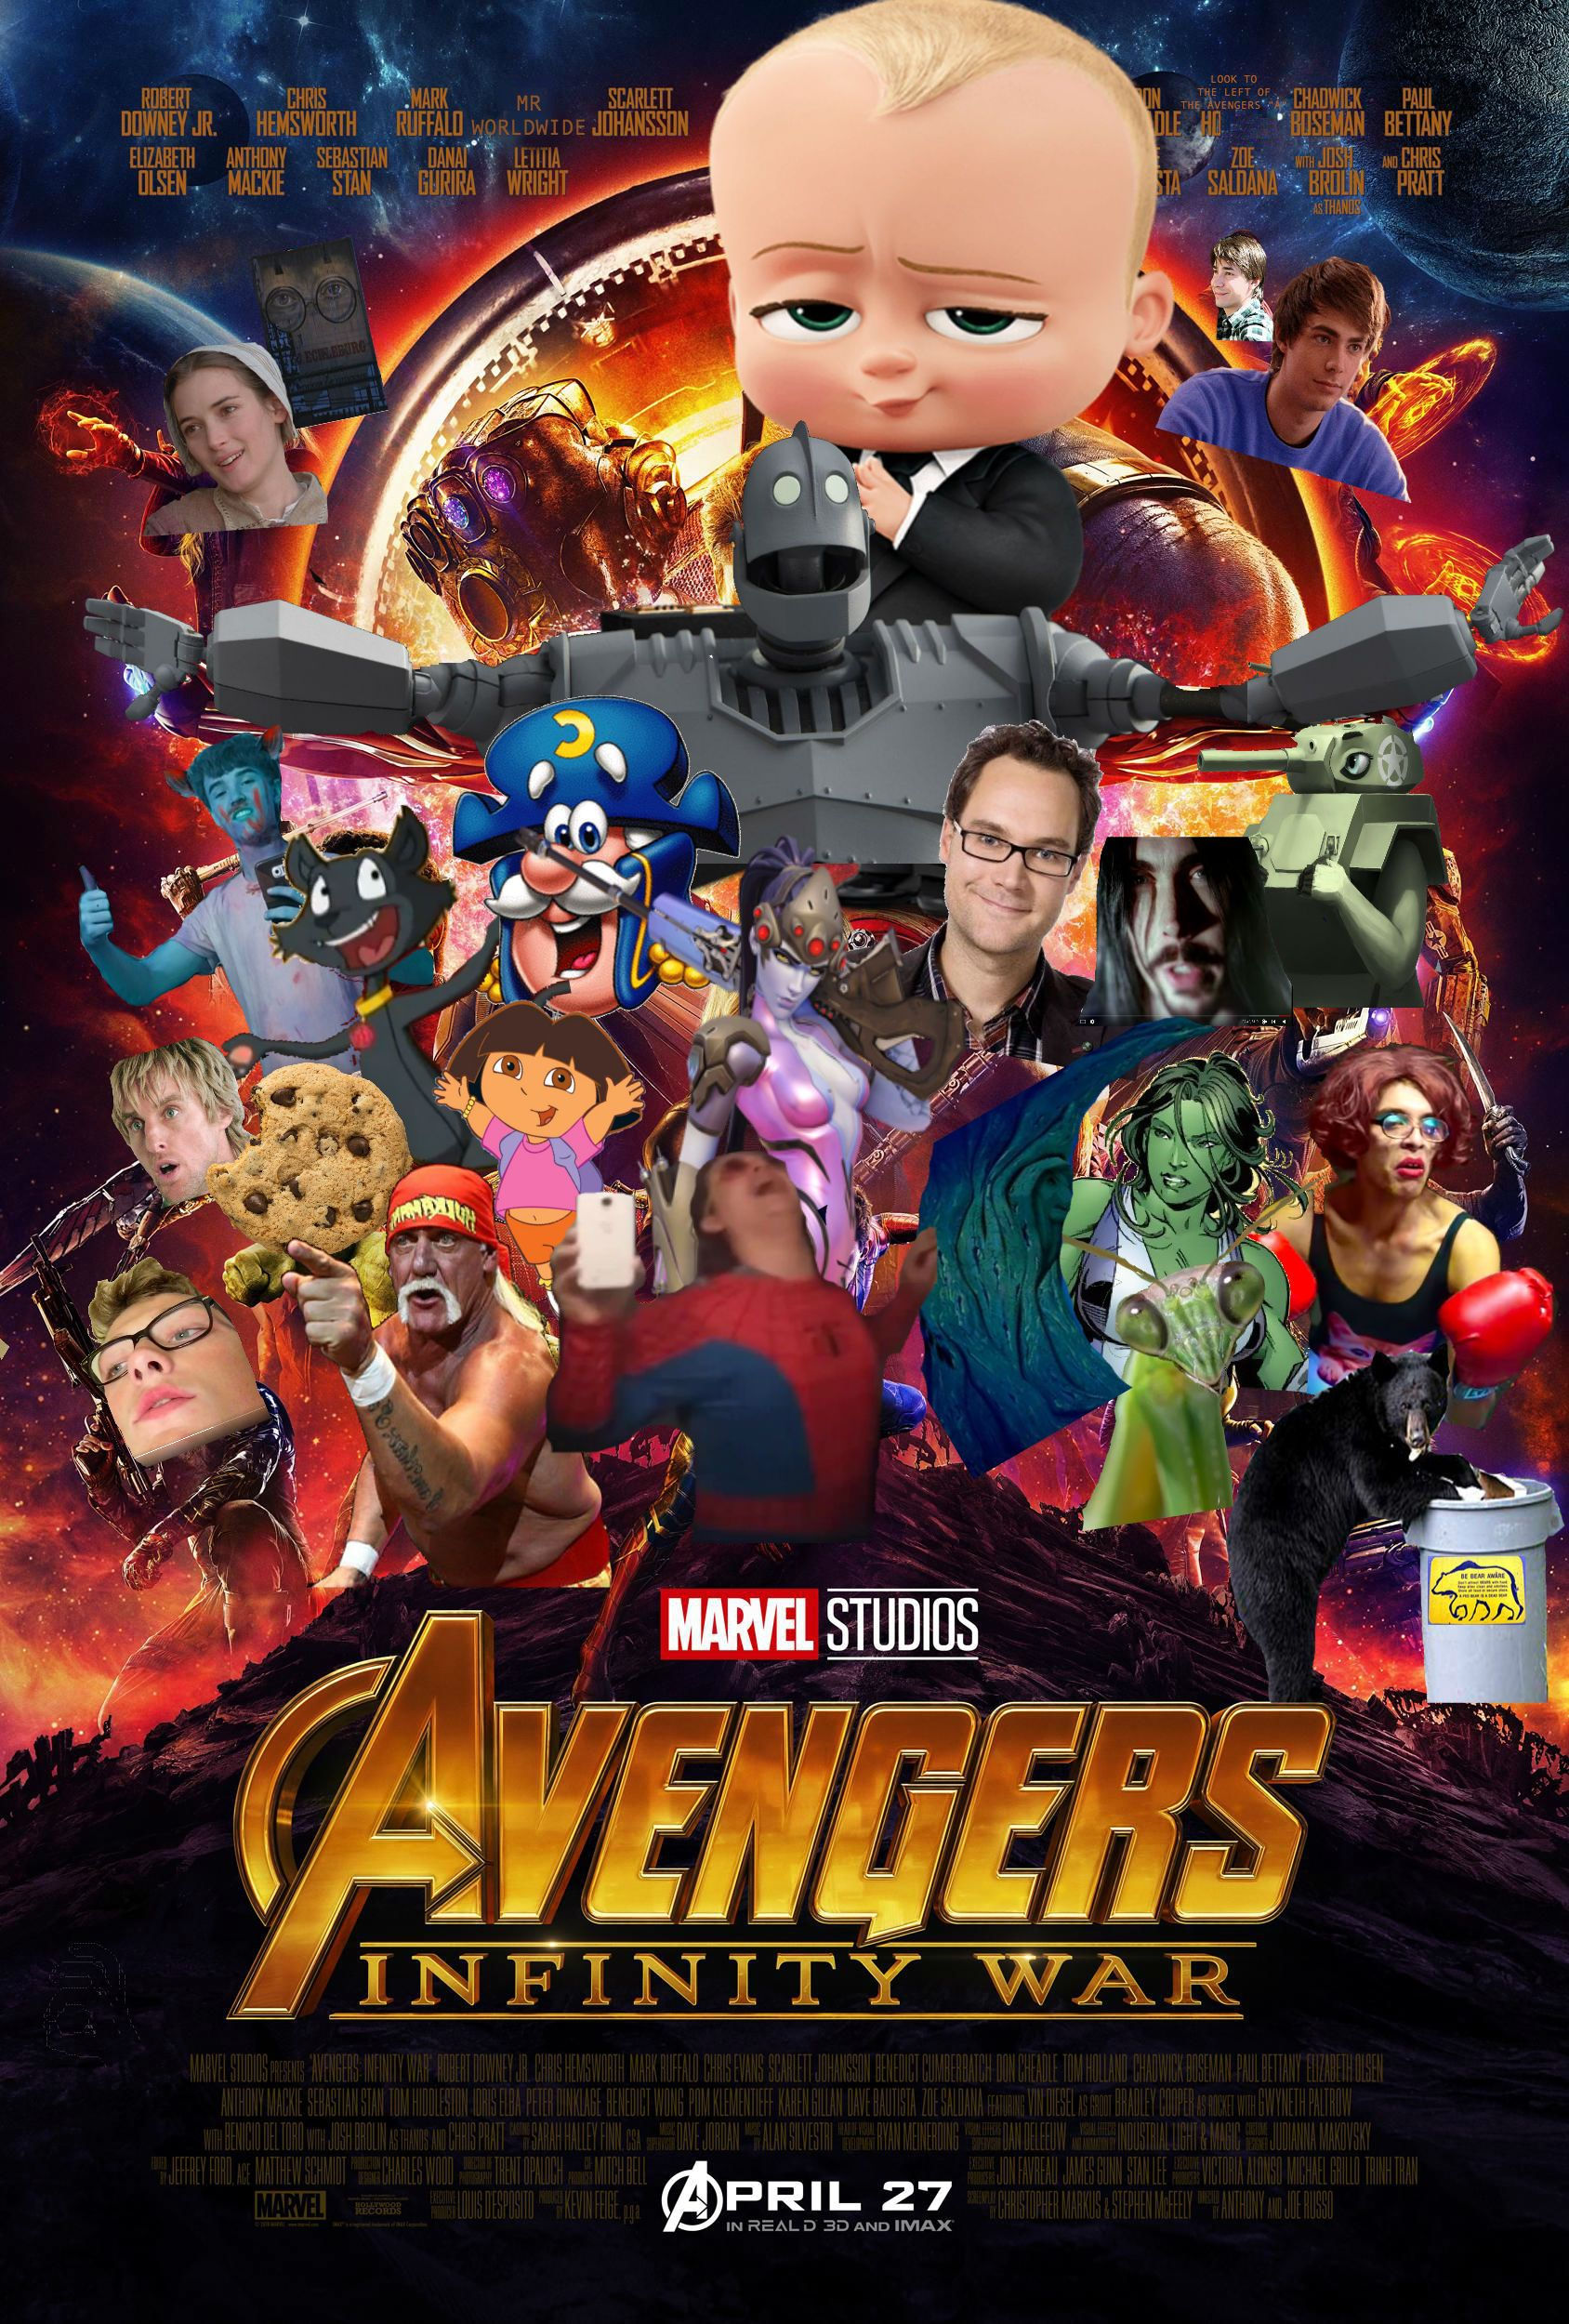 Higher Quality Avengers Infinity War Poster Infinity War Poster Marvel Infinity War Avengers Funny